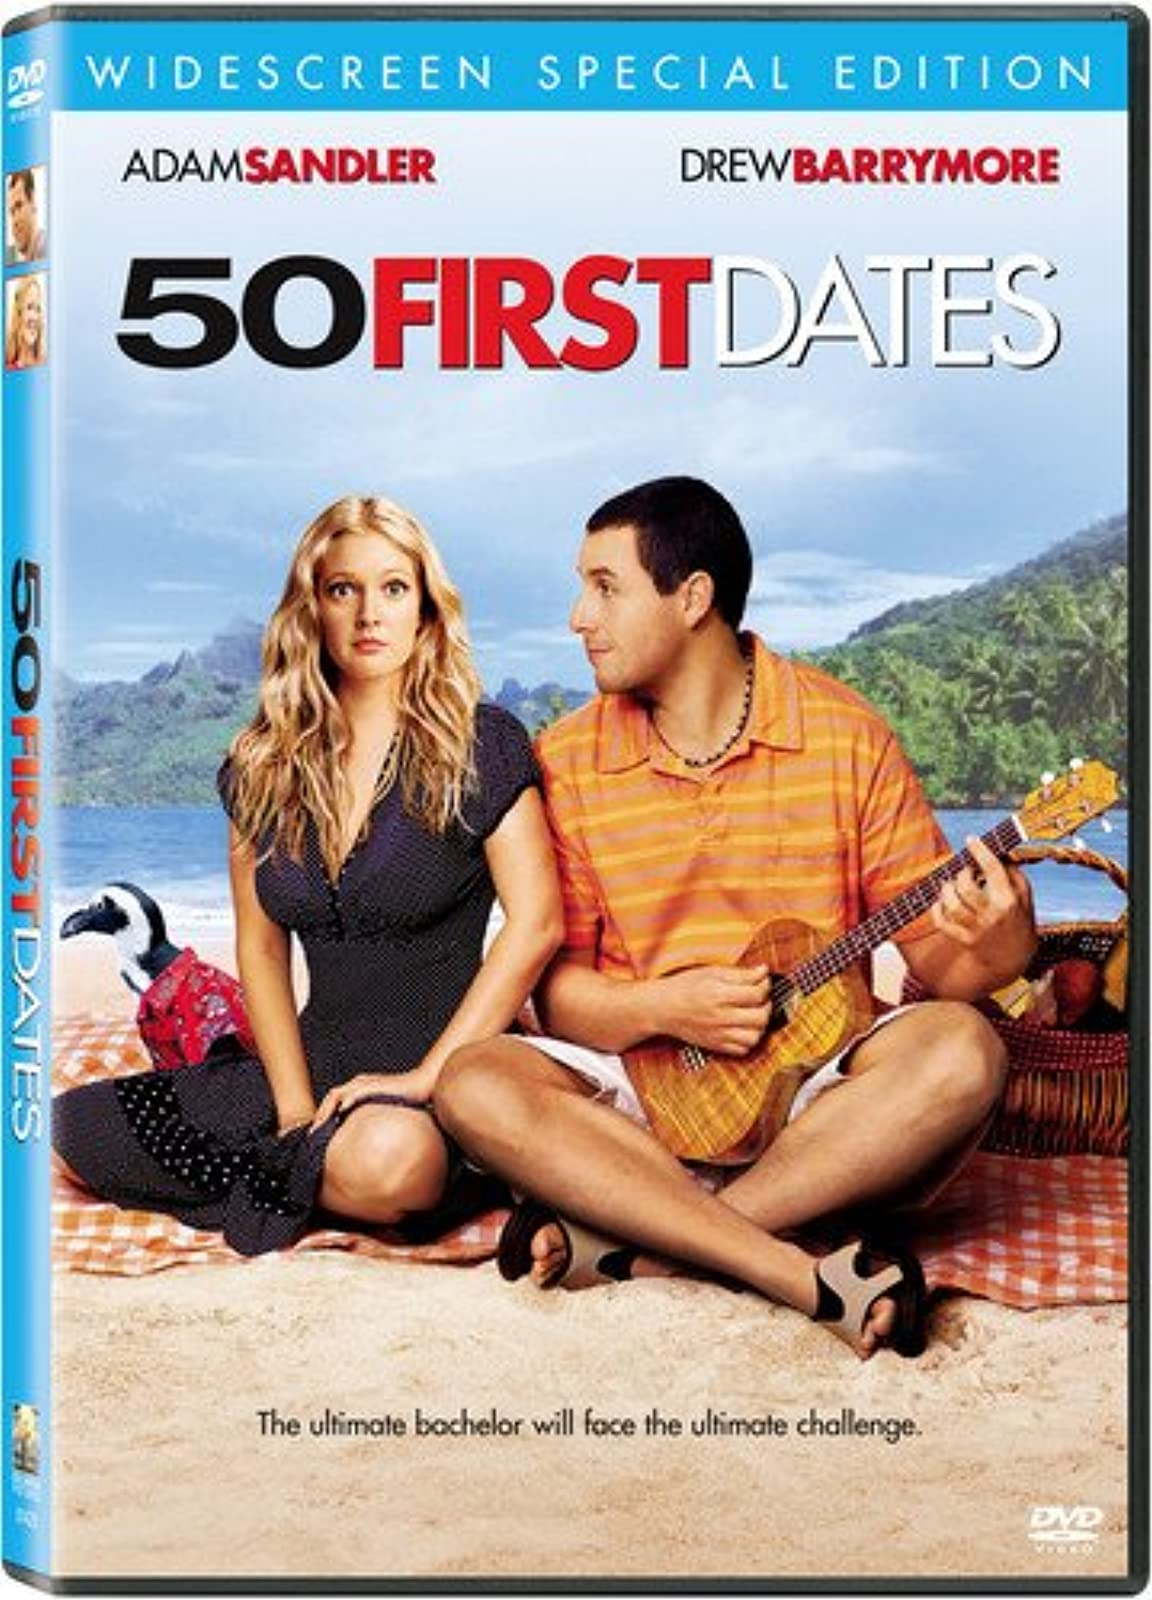 50 First Dates Widescreen Special Edition On DVD With Rob Schneider